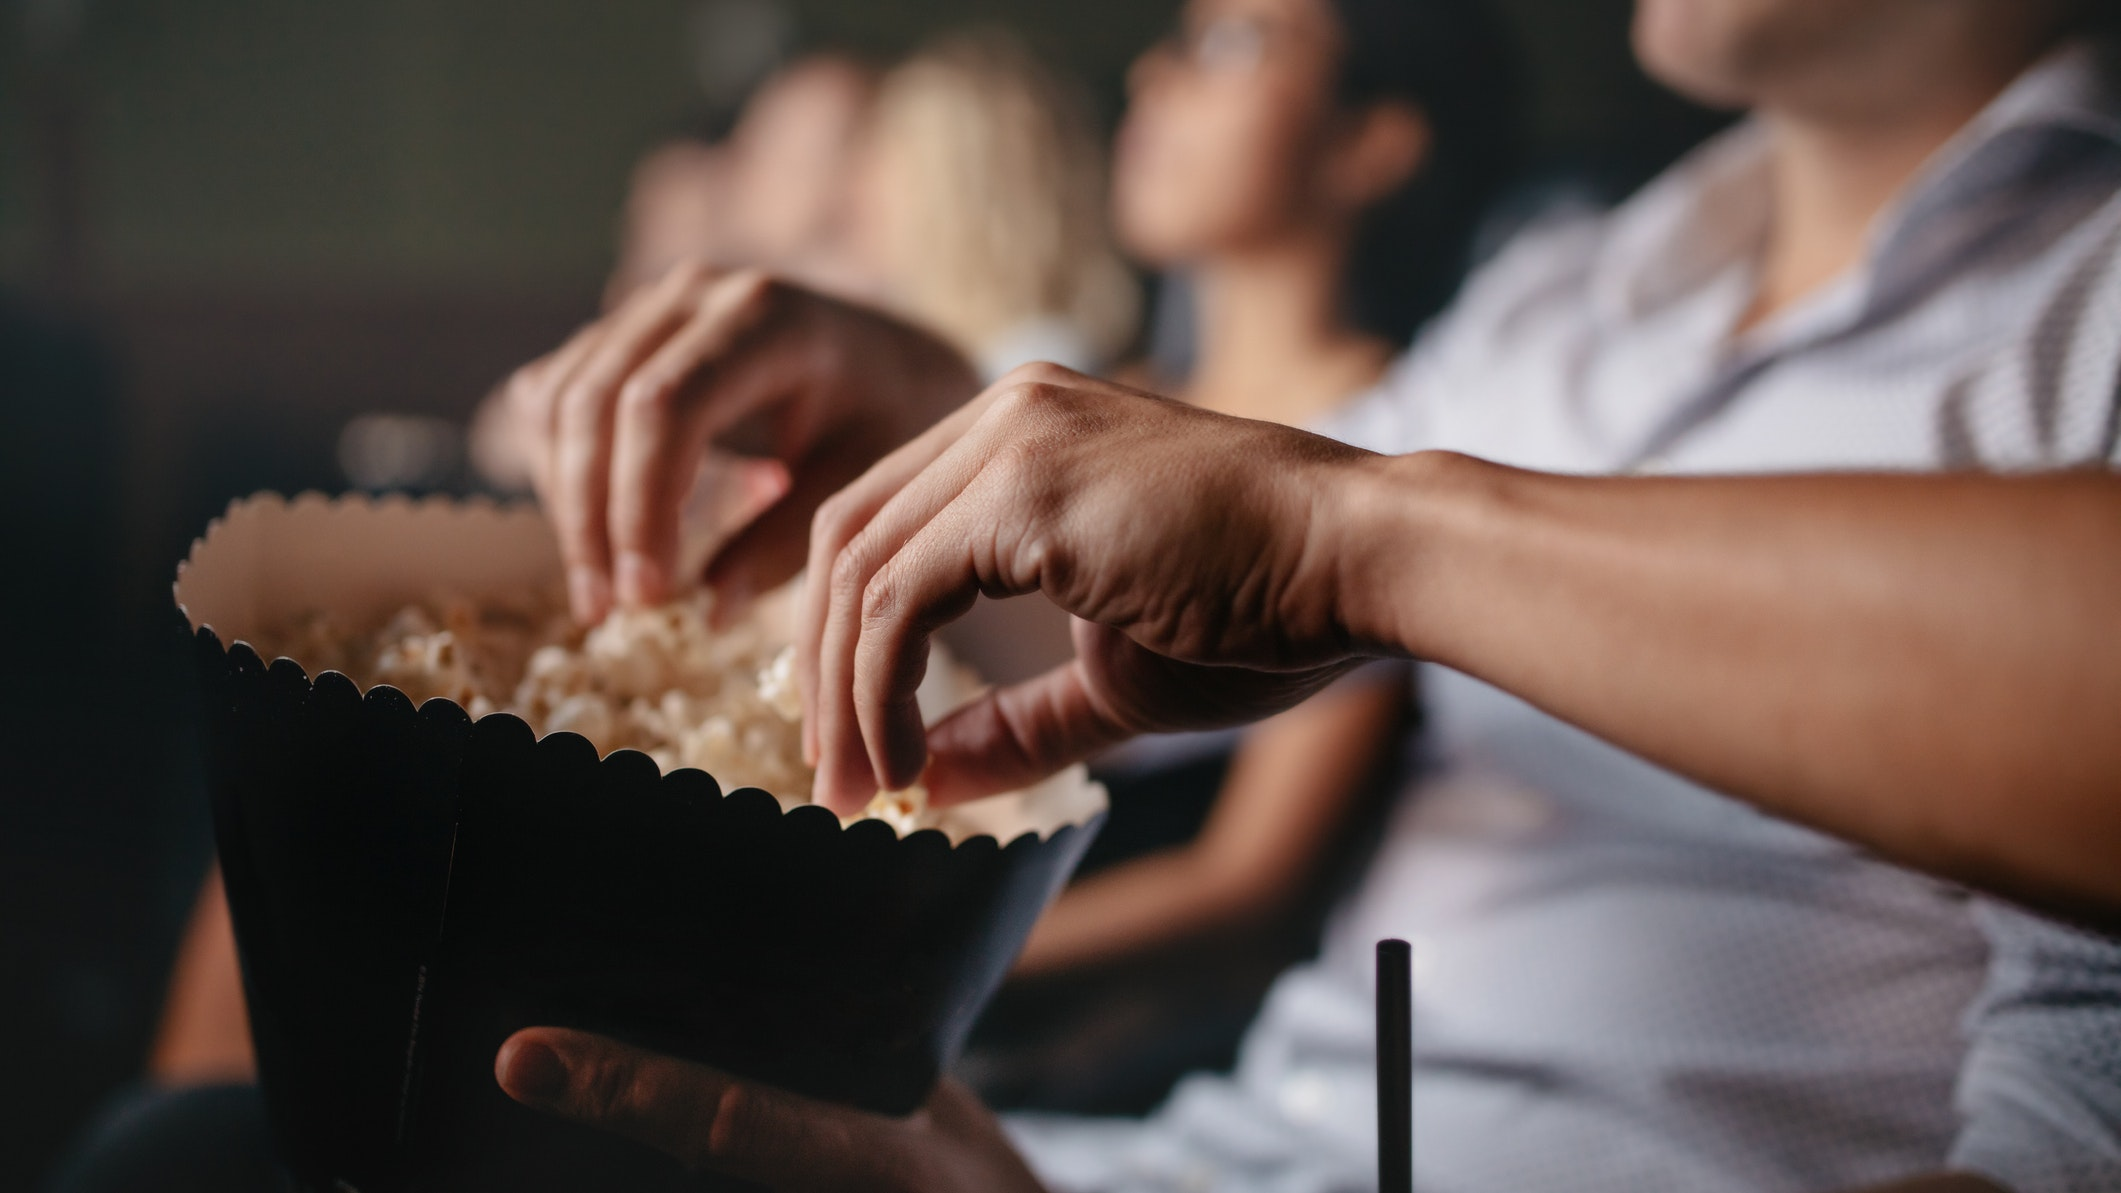 7 Quiet Cinema Snacks To Eat The Movies Bt